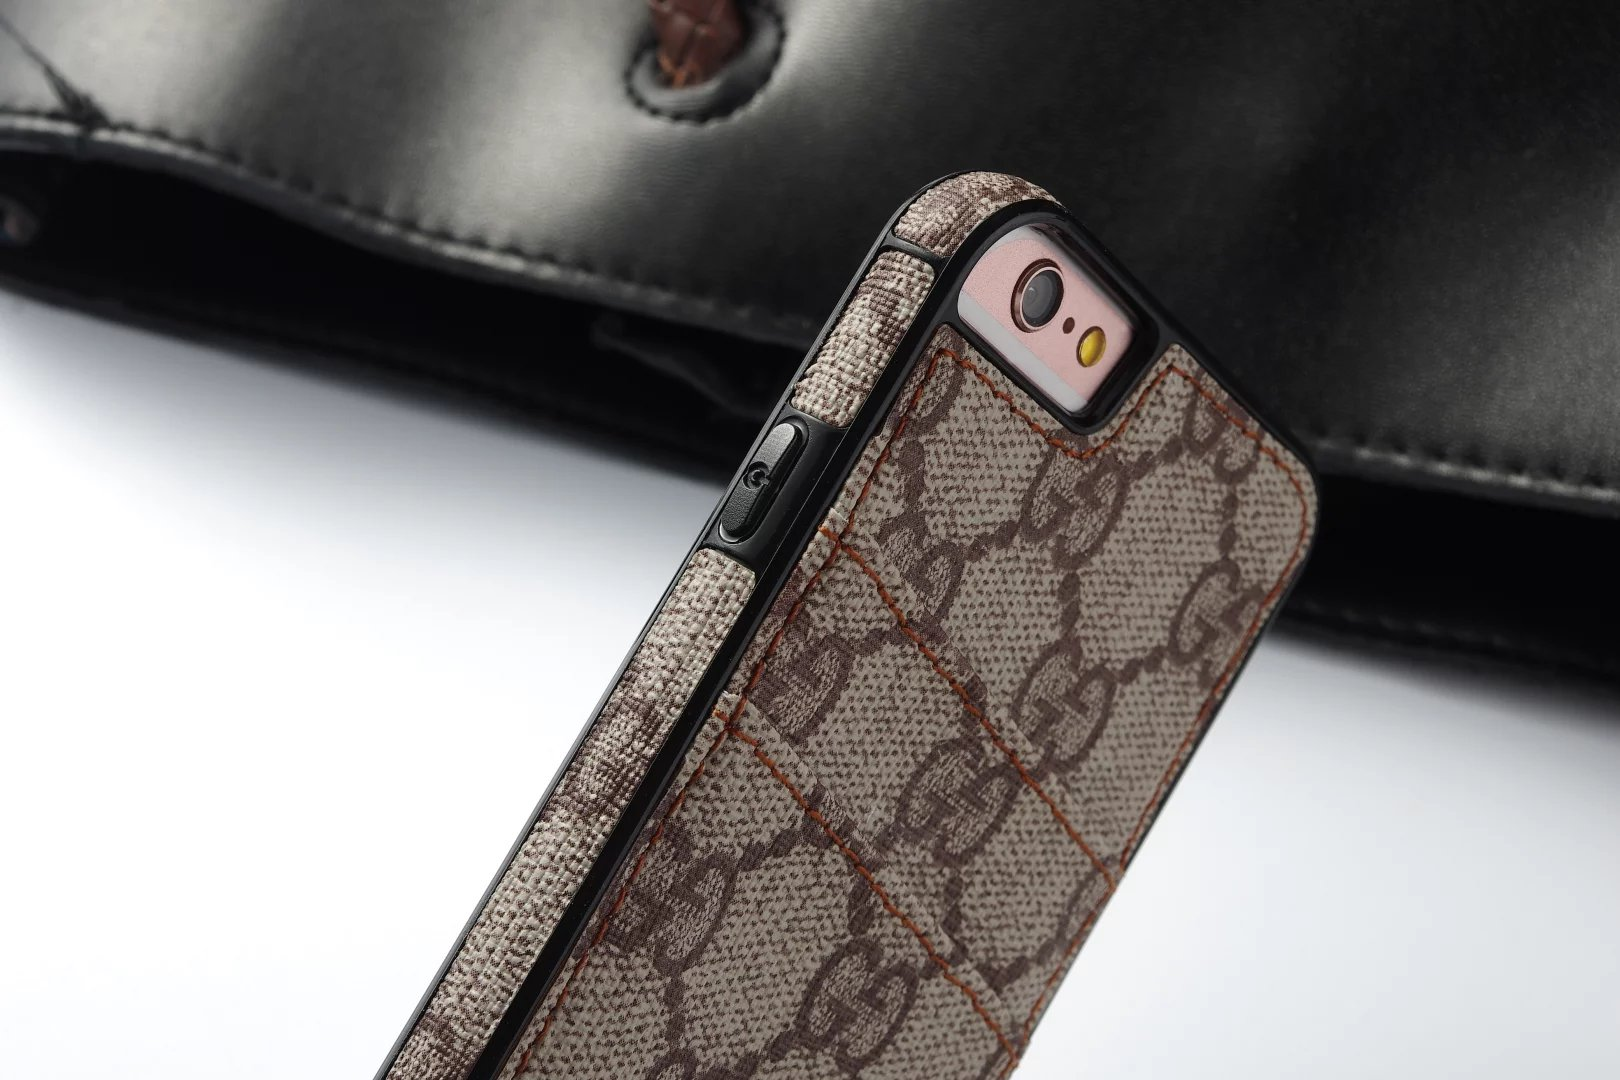 filzhülle iphone iphone hüllen shop Louis Vuitton iphone6s hülle iphone 6s hülle marken handy hülle i phone 6s kosten iphone 6 carbon hülle iphone 6s iphone 6 verkaufen iphone 6s ledertasche exklusiv